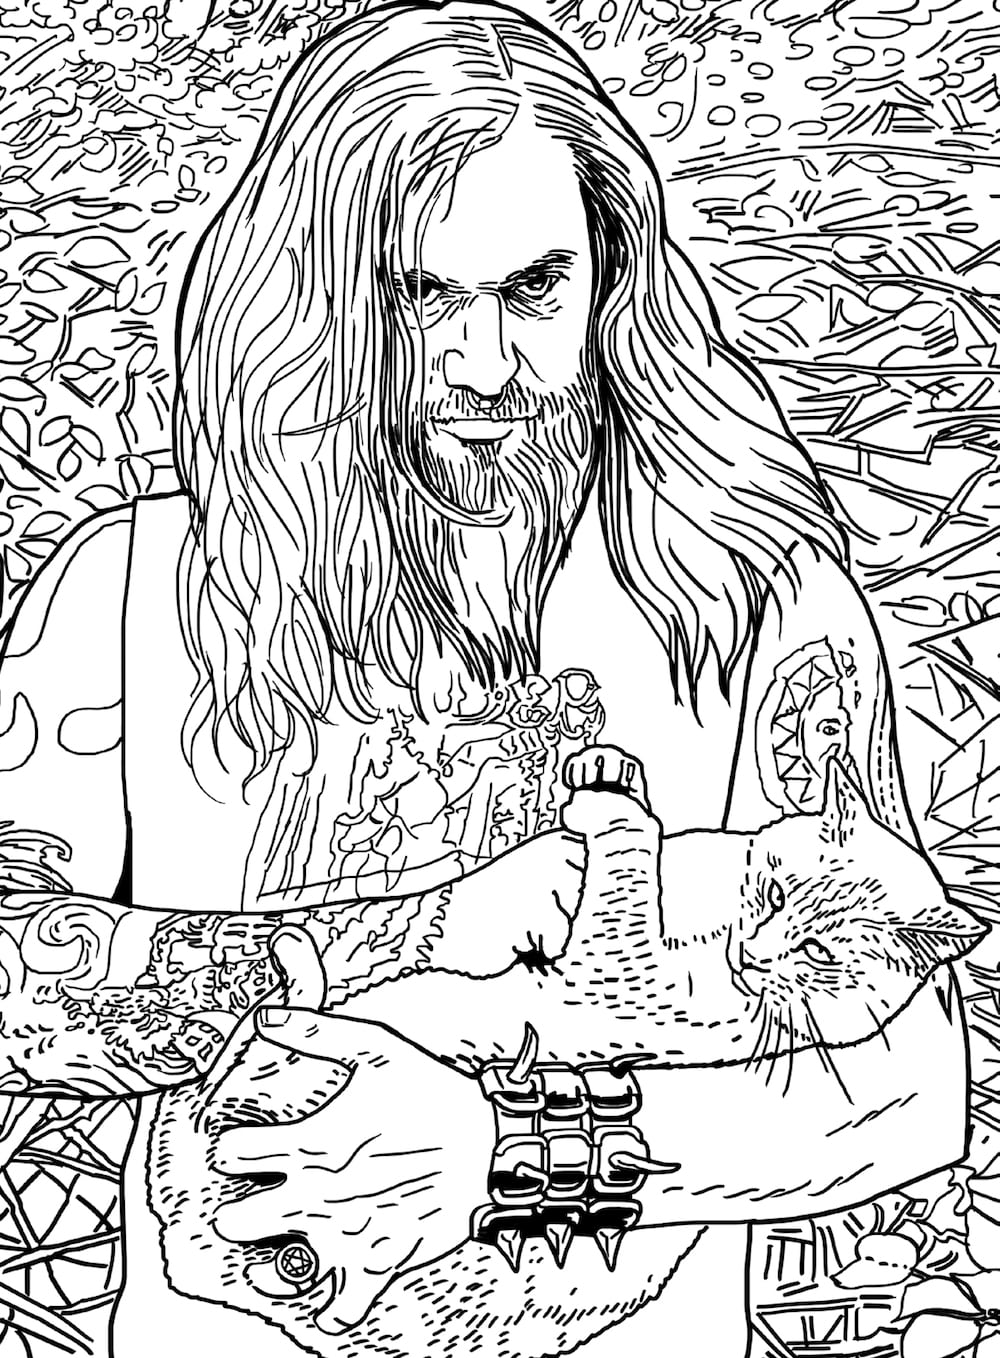 The Metal Cats Coloring Book Is Merges All Your Most Favorite